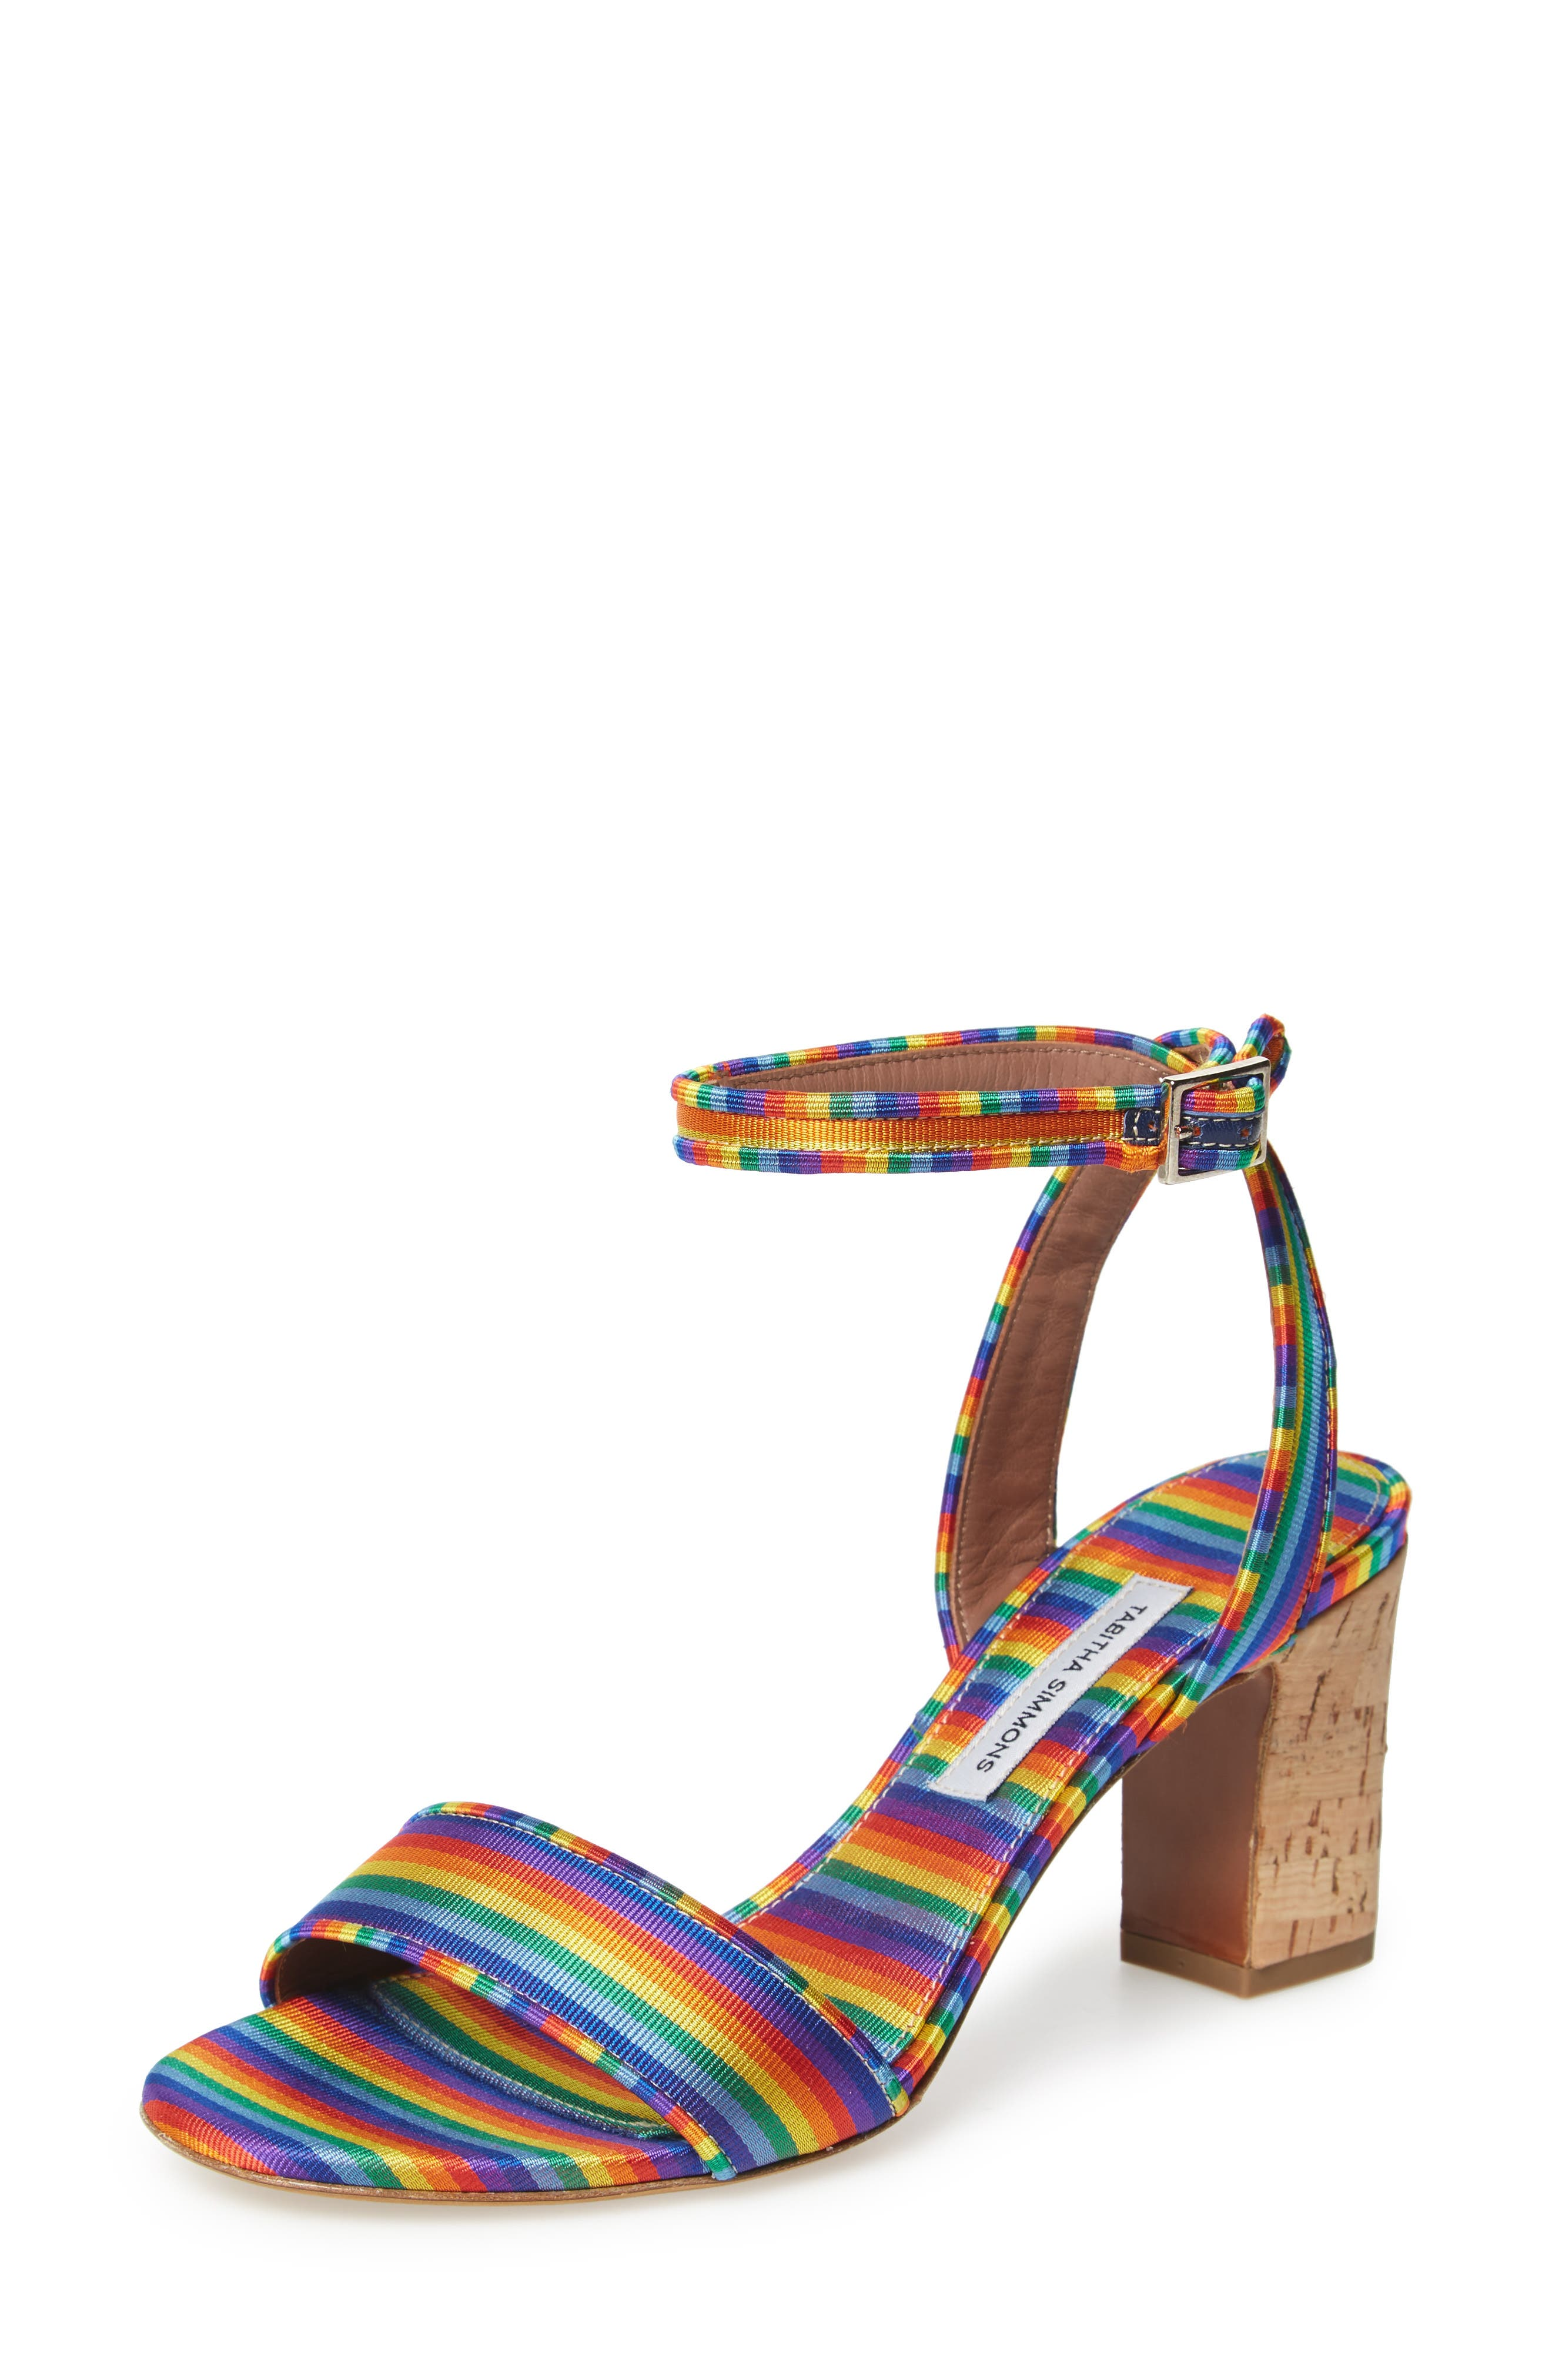 Alternate Image 1 Selected - Tabitha Simmons Leticia Cork Heel Sandal (Women)